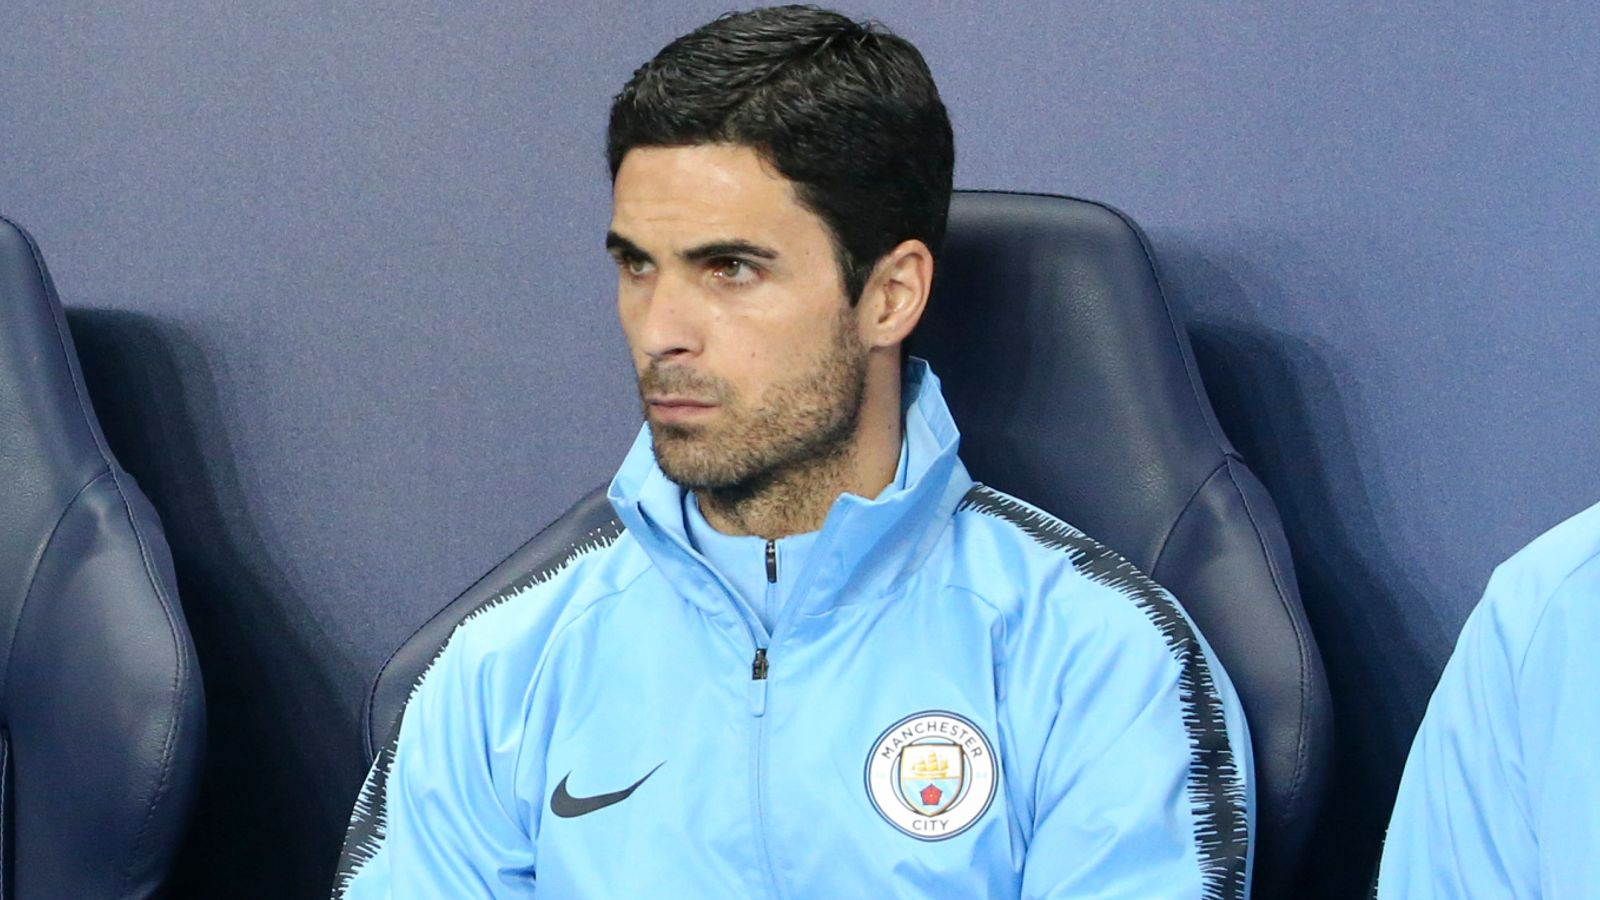 Arsenal hope Arteta in charge at Everton